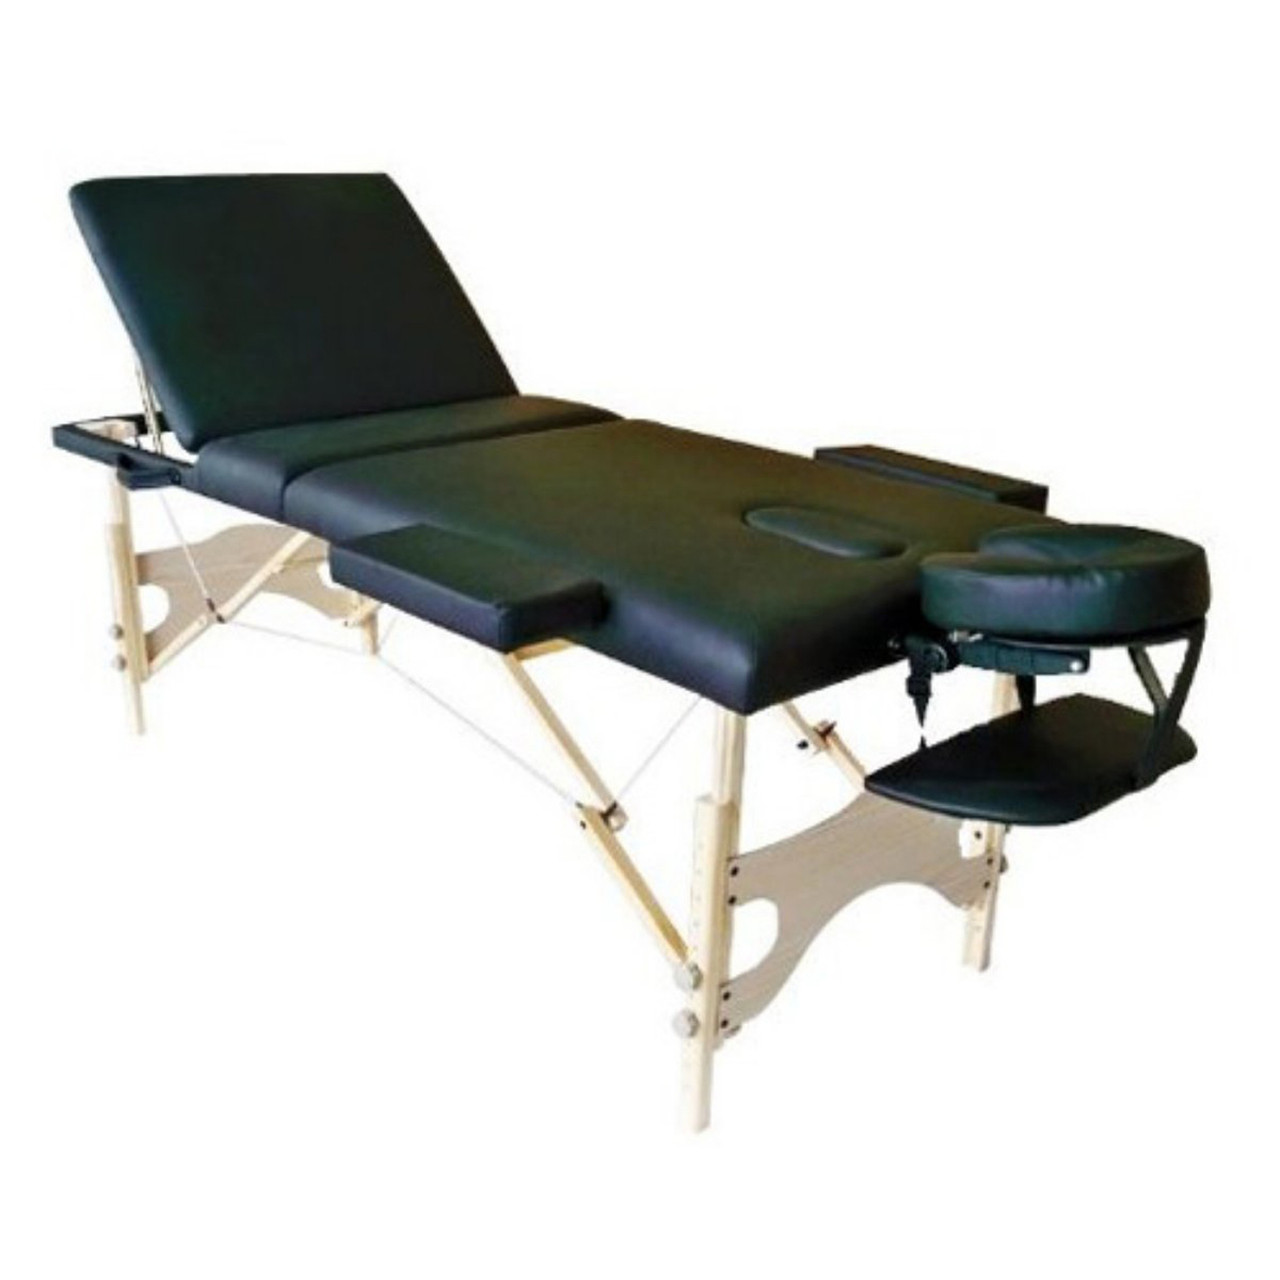 Magnificent Sivan Health And Fitness Health Fitness Three Fold Reiki Portable Massage Table And Carrying Case Black Home Interior And Landscaping Eliaenasavecom